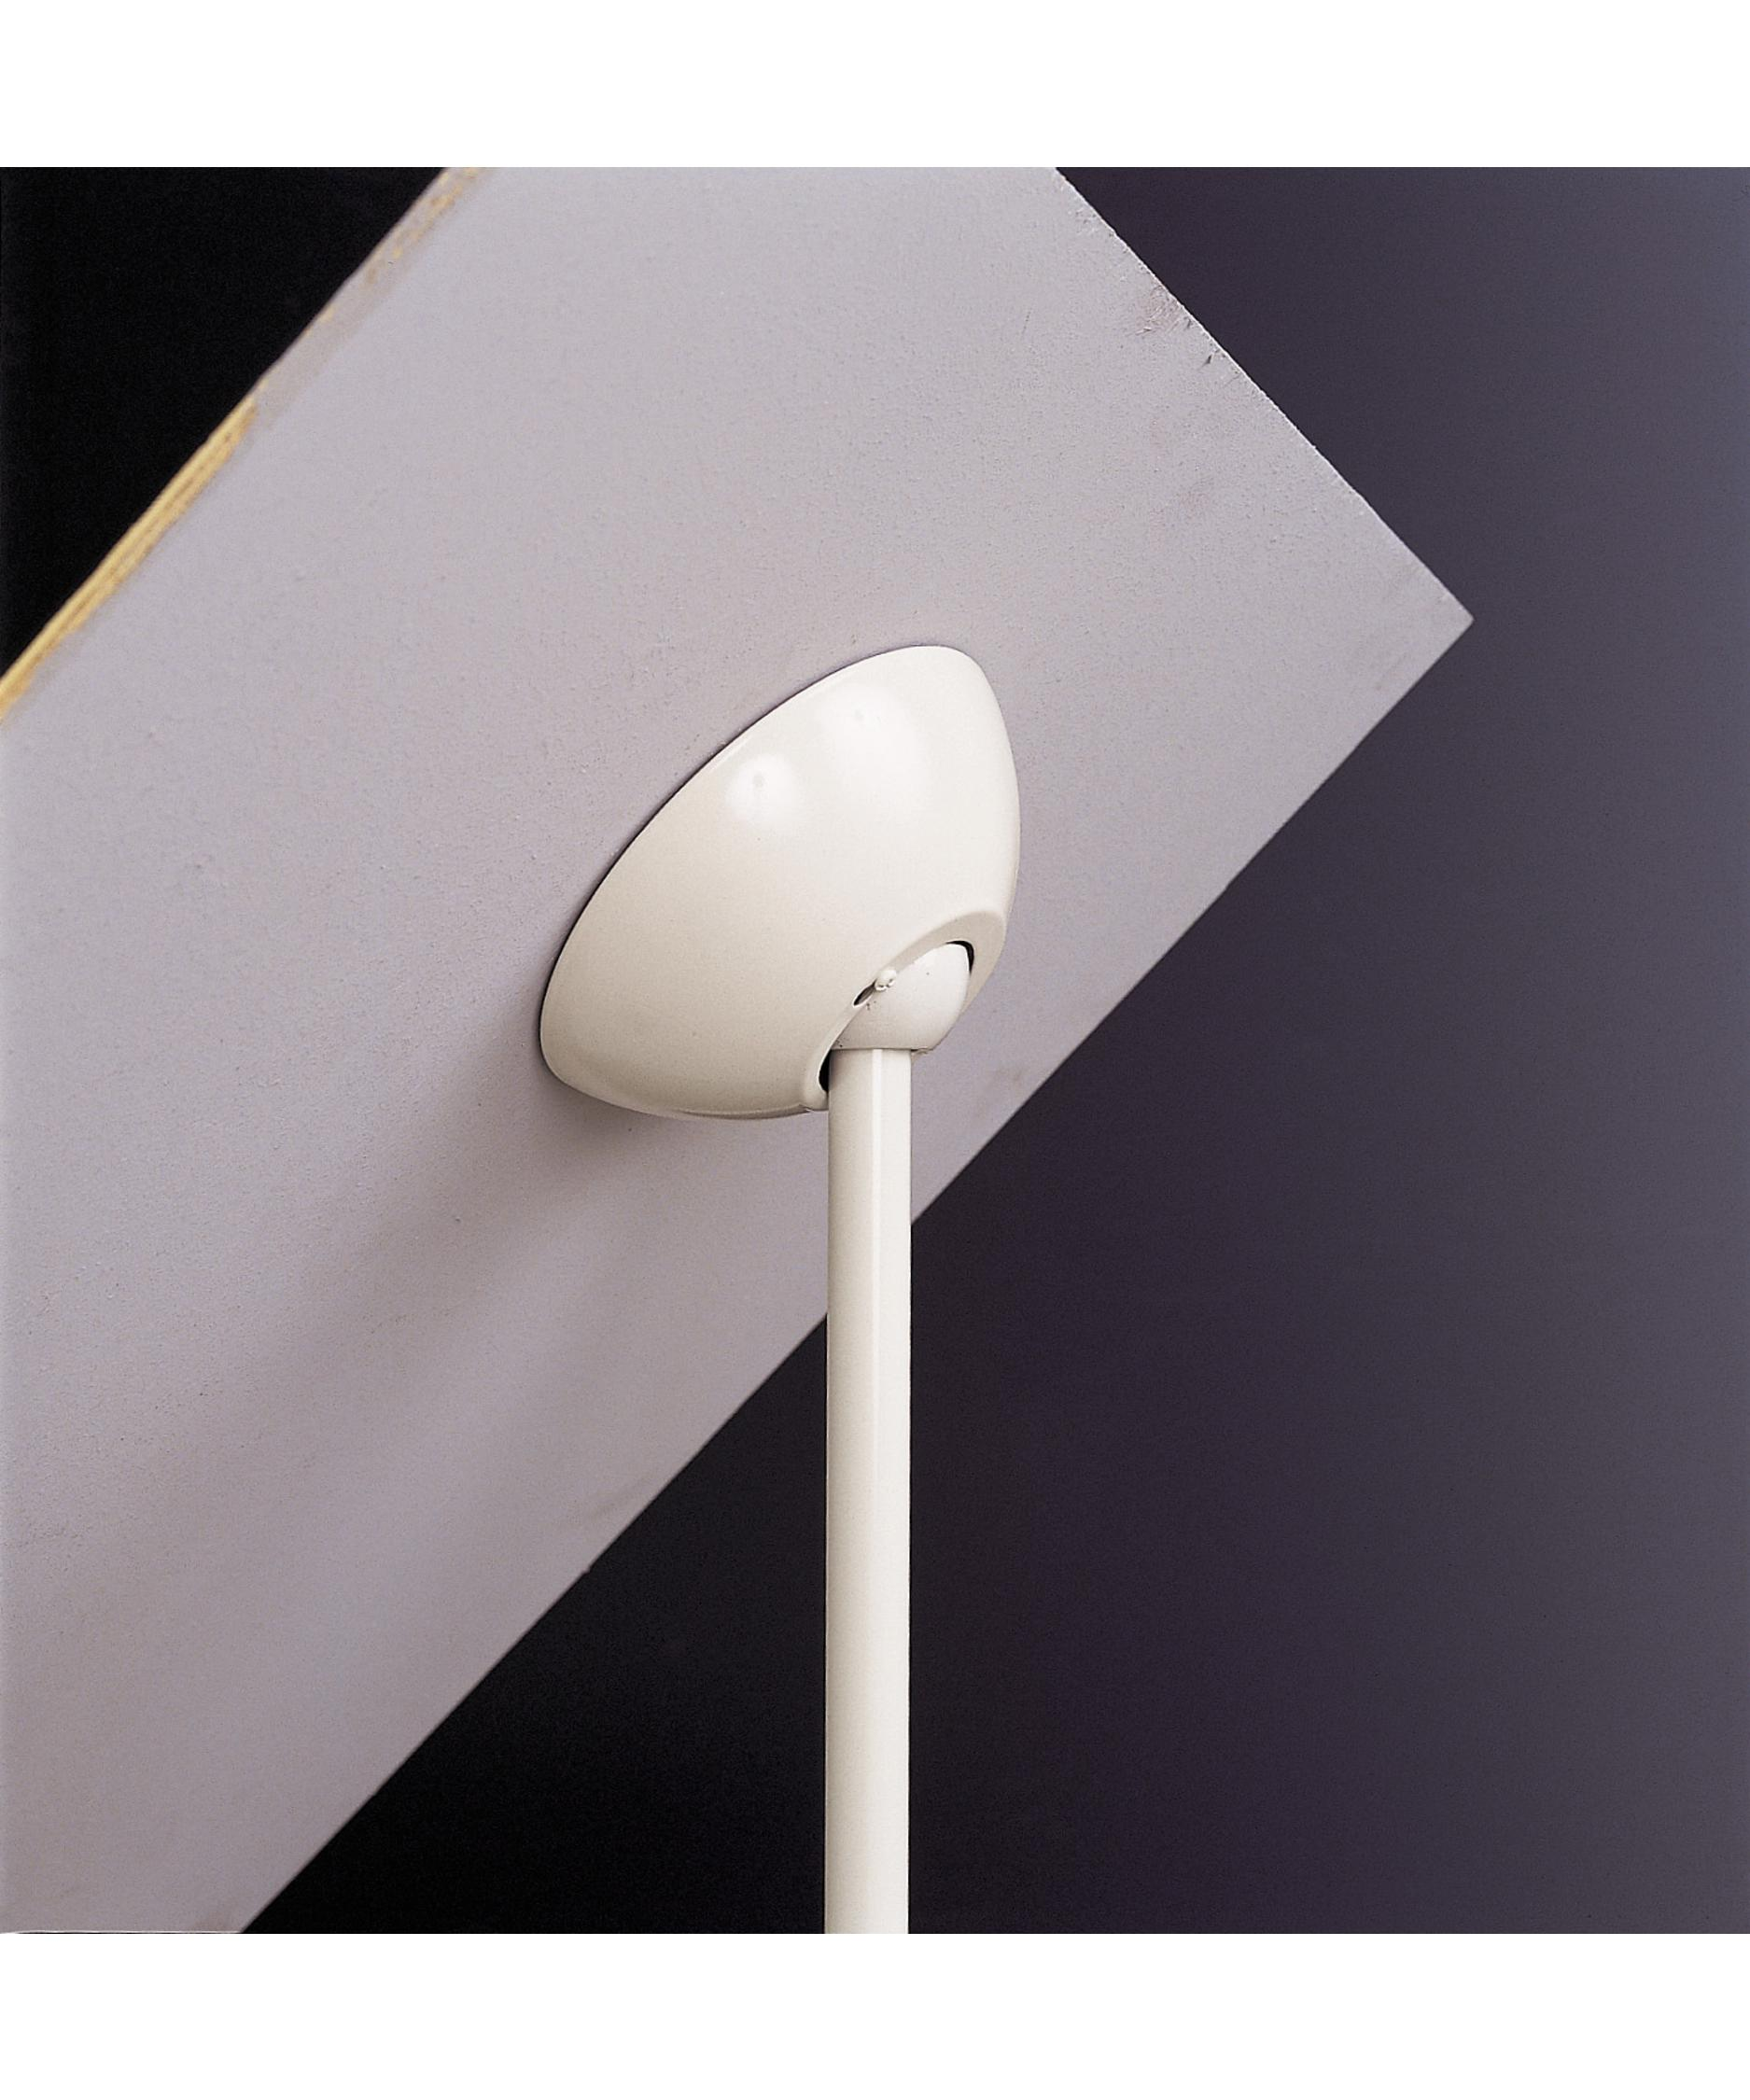 Minka Aire A245 Sloped Ceiling Adapter | Capitol Lighting 1 ...